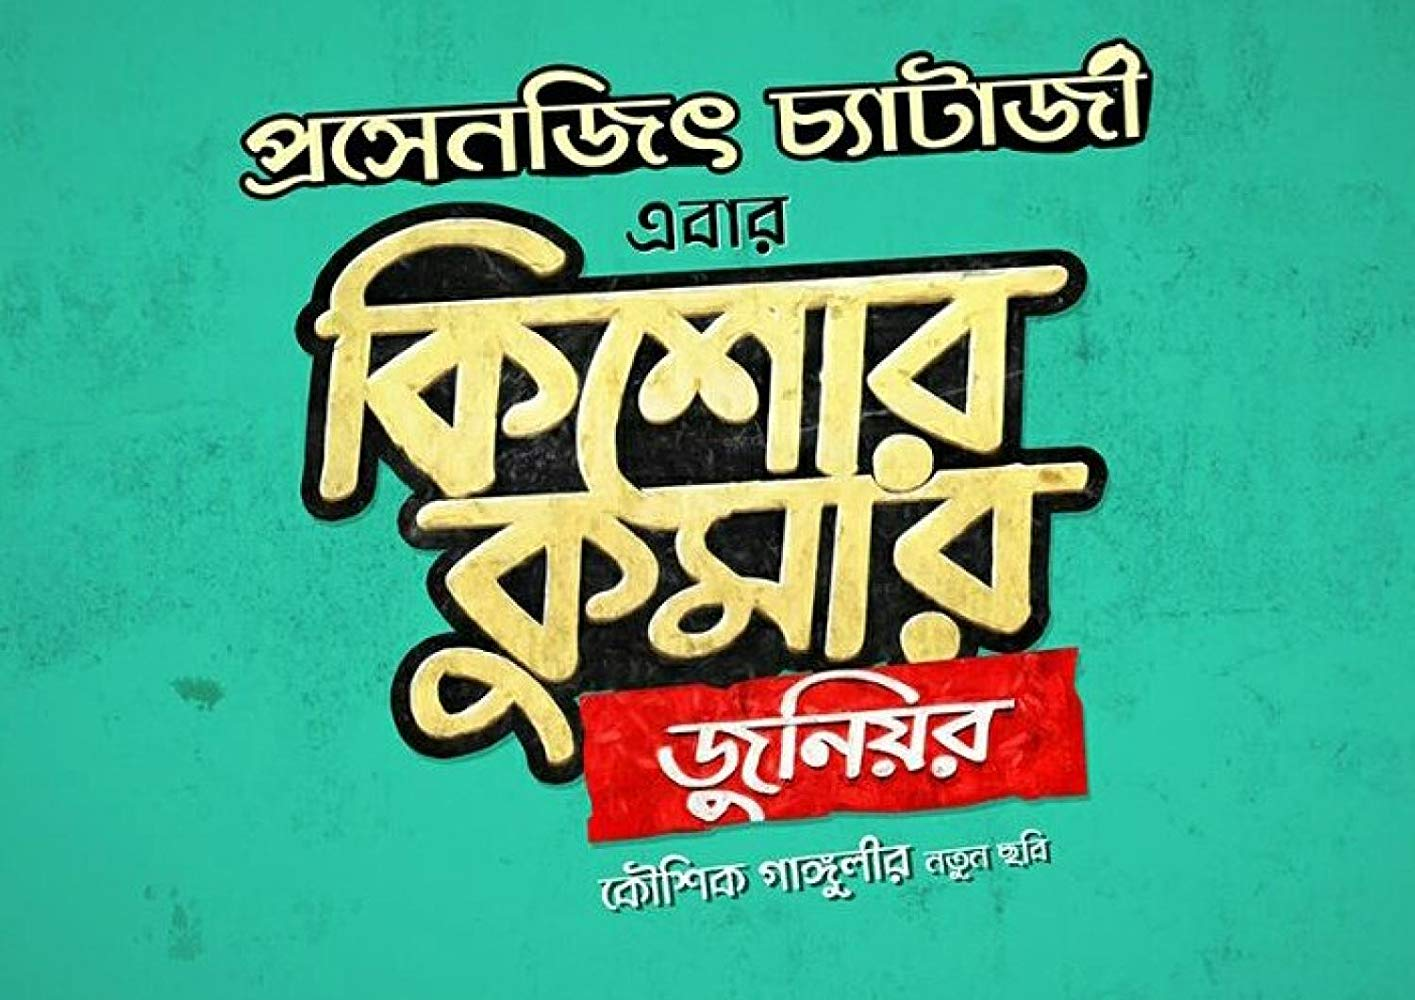 Kishore Kumar Junior 2018 Bengali WEB-DL HDRip x264 AAC [Team DRSD]